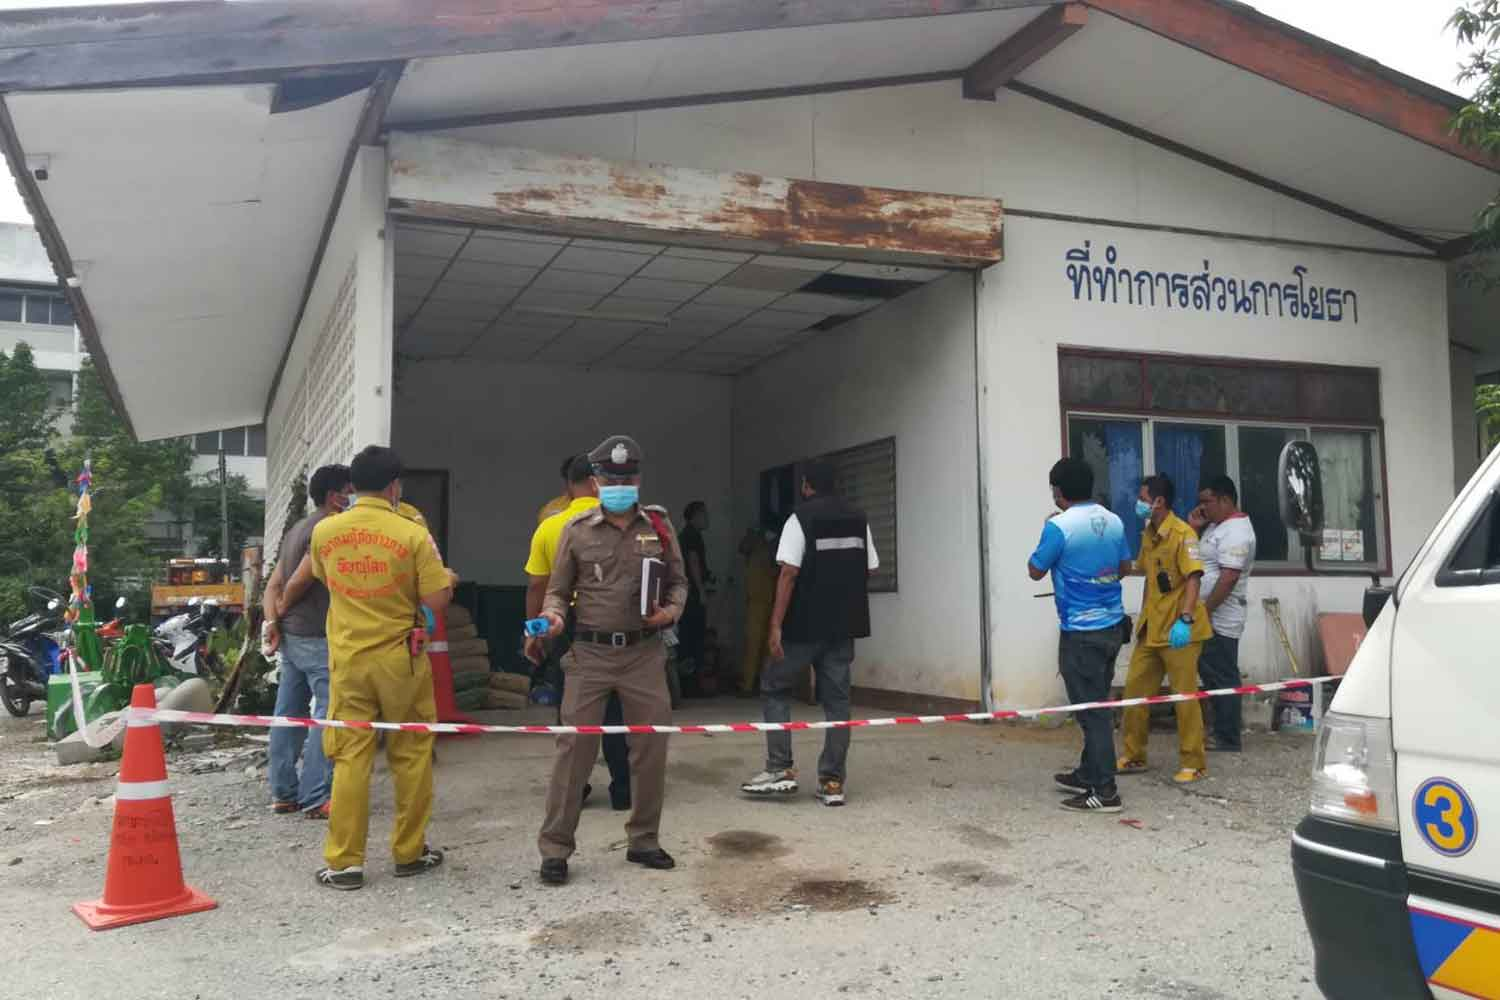 The public works office of Phitsanulok Municipality is cordoned off as police examine the room where a security guard was found dead on Wednesday morning. (Photo: Chinnawat Singha)